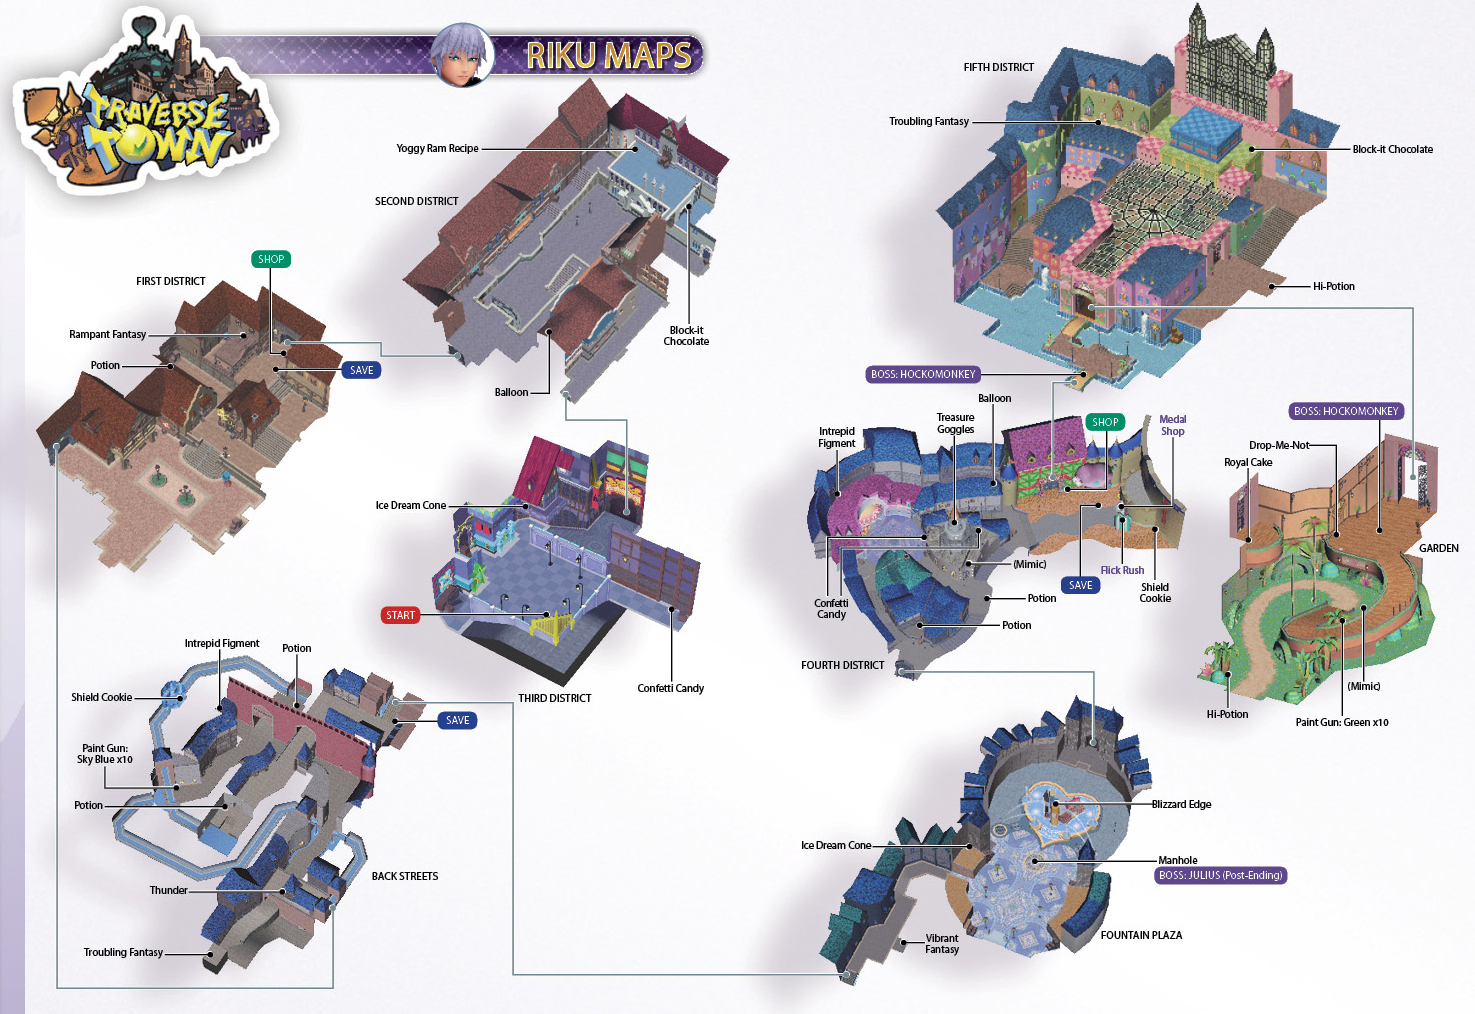 Imagen traverse town map 2g kingdom hearts fannon wiki traverse town map 2g gumiabroncs Images